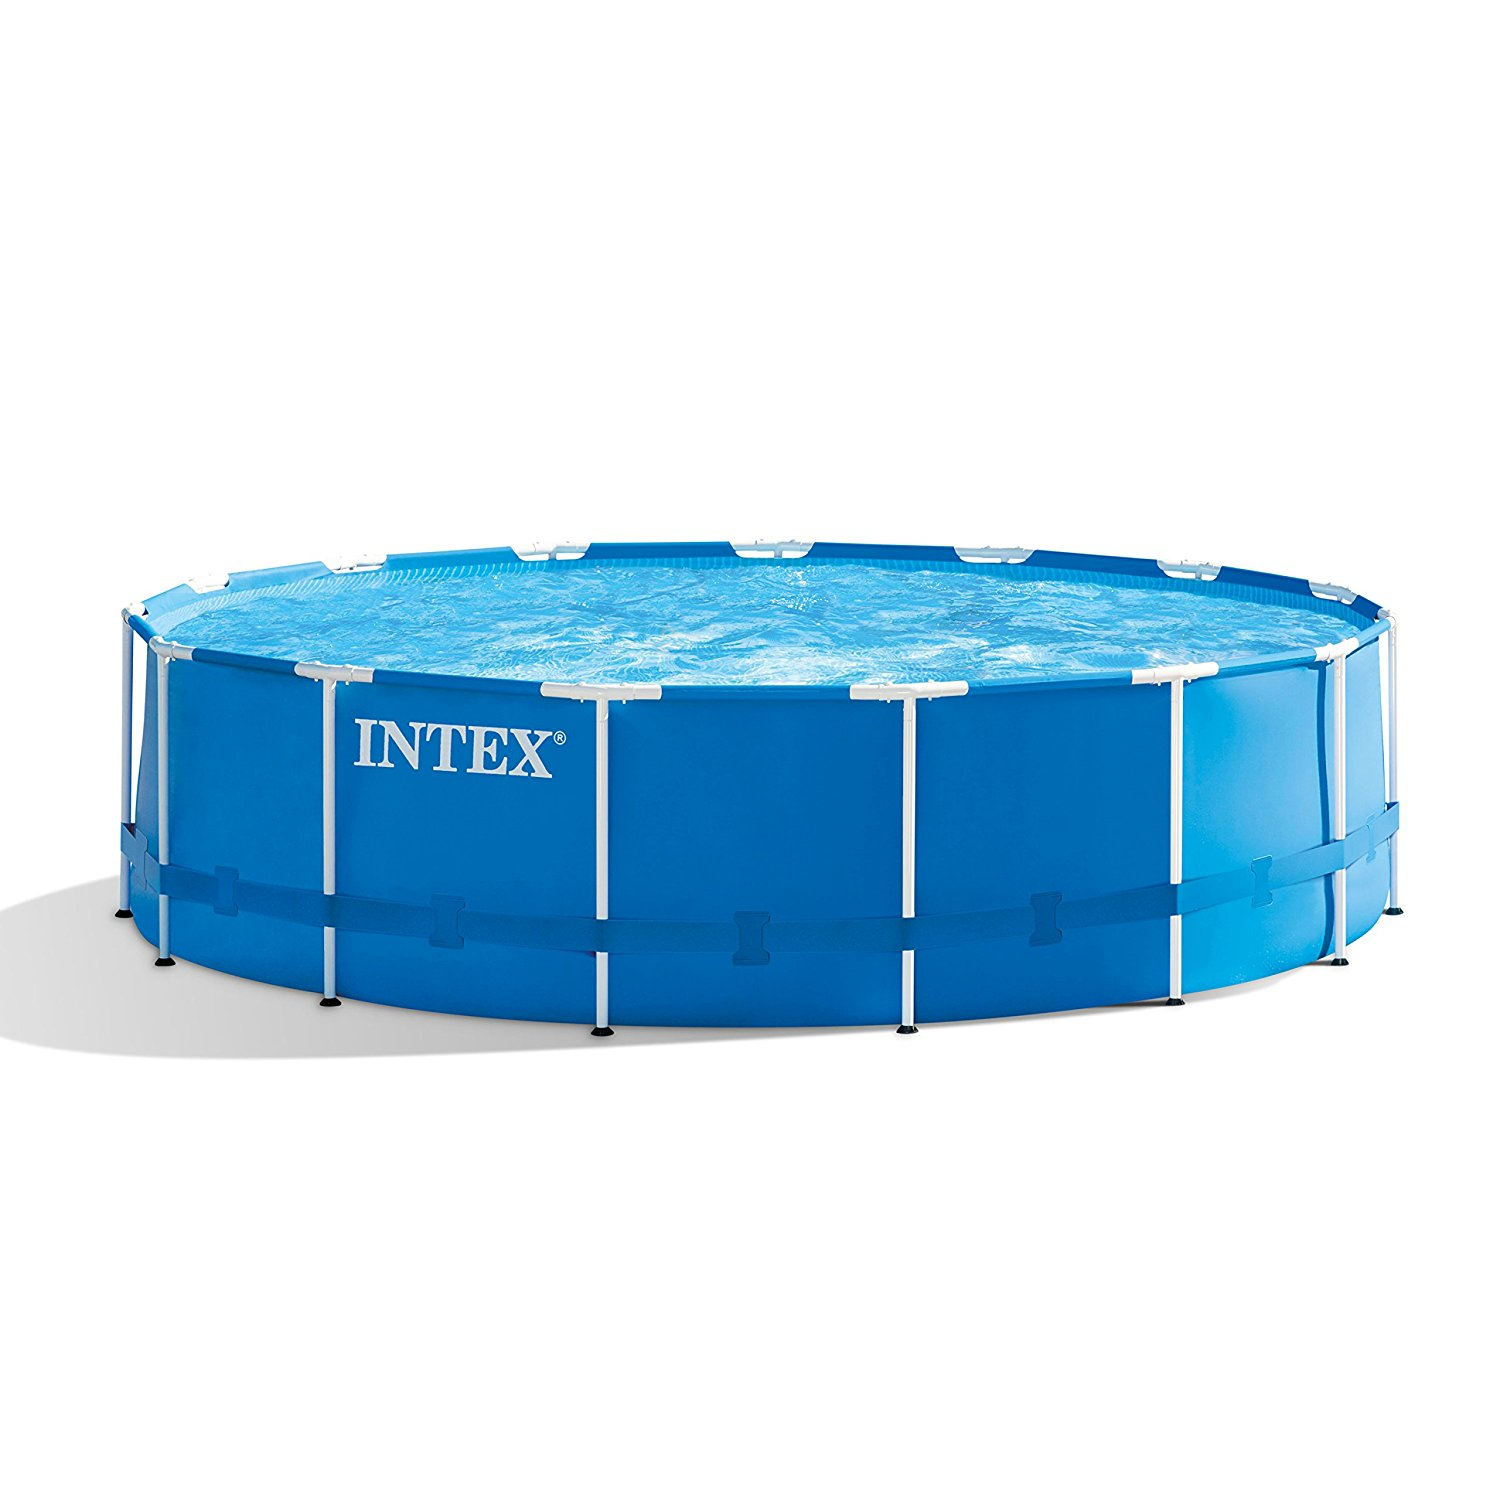 Intex 28241eh 15ft X 48in Metal Frame Pool Set With Filter